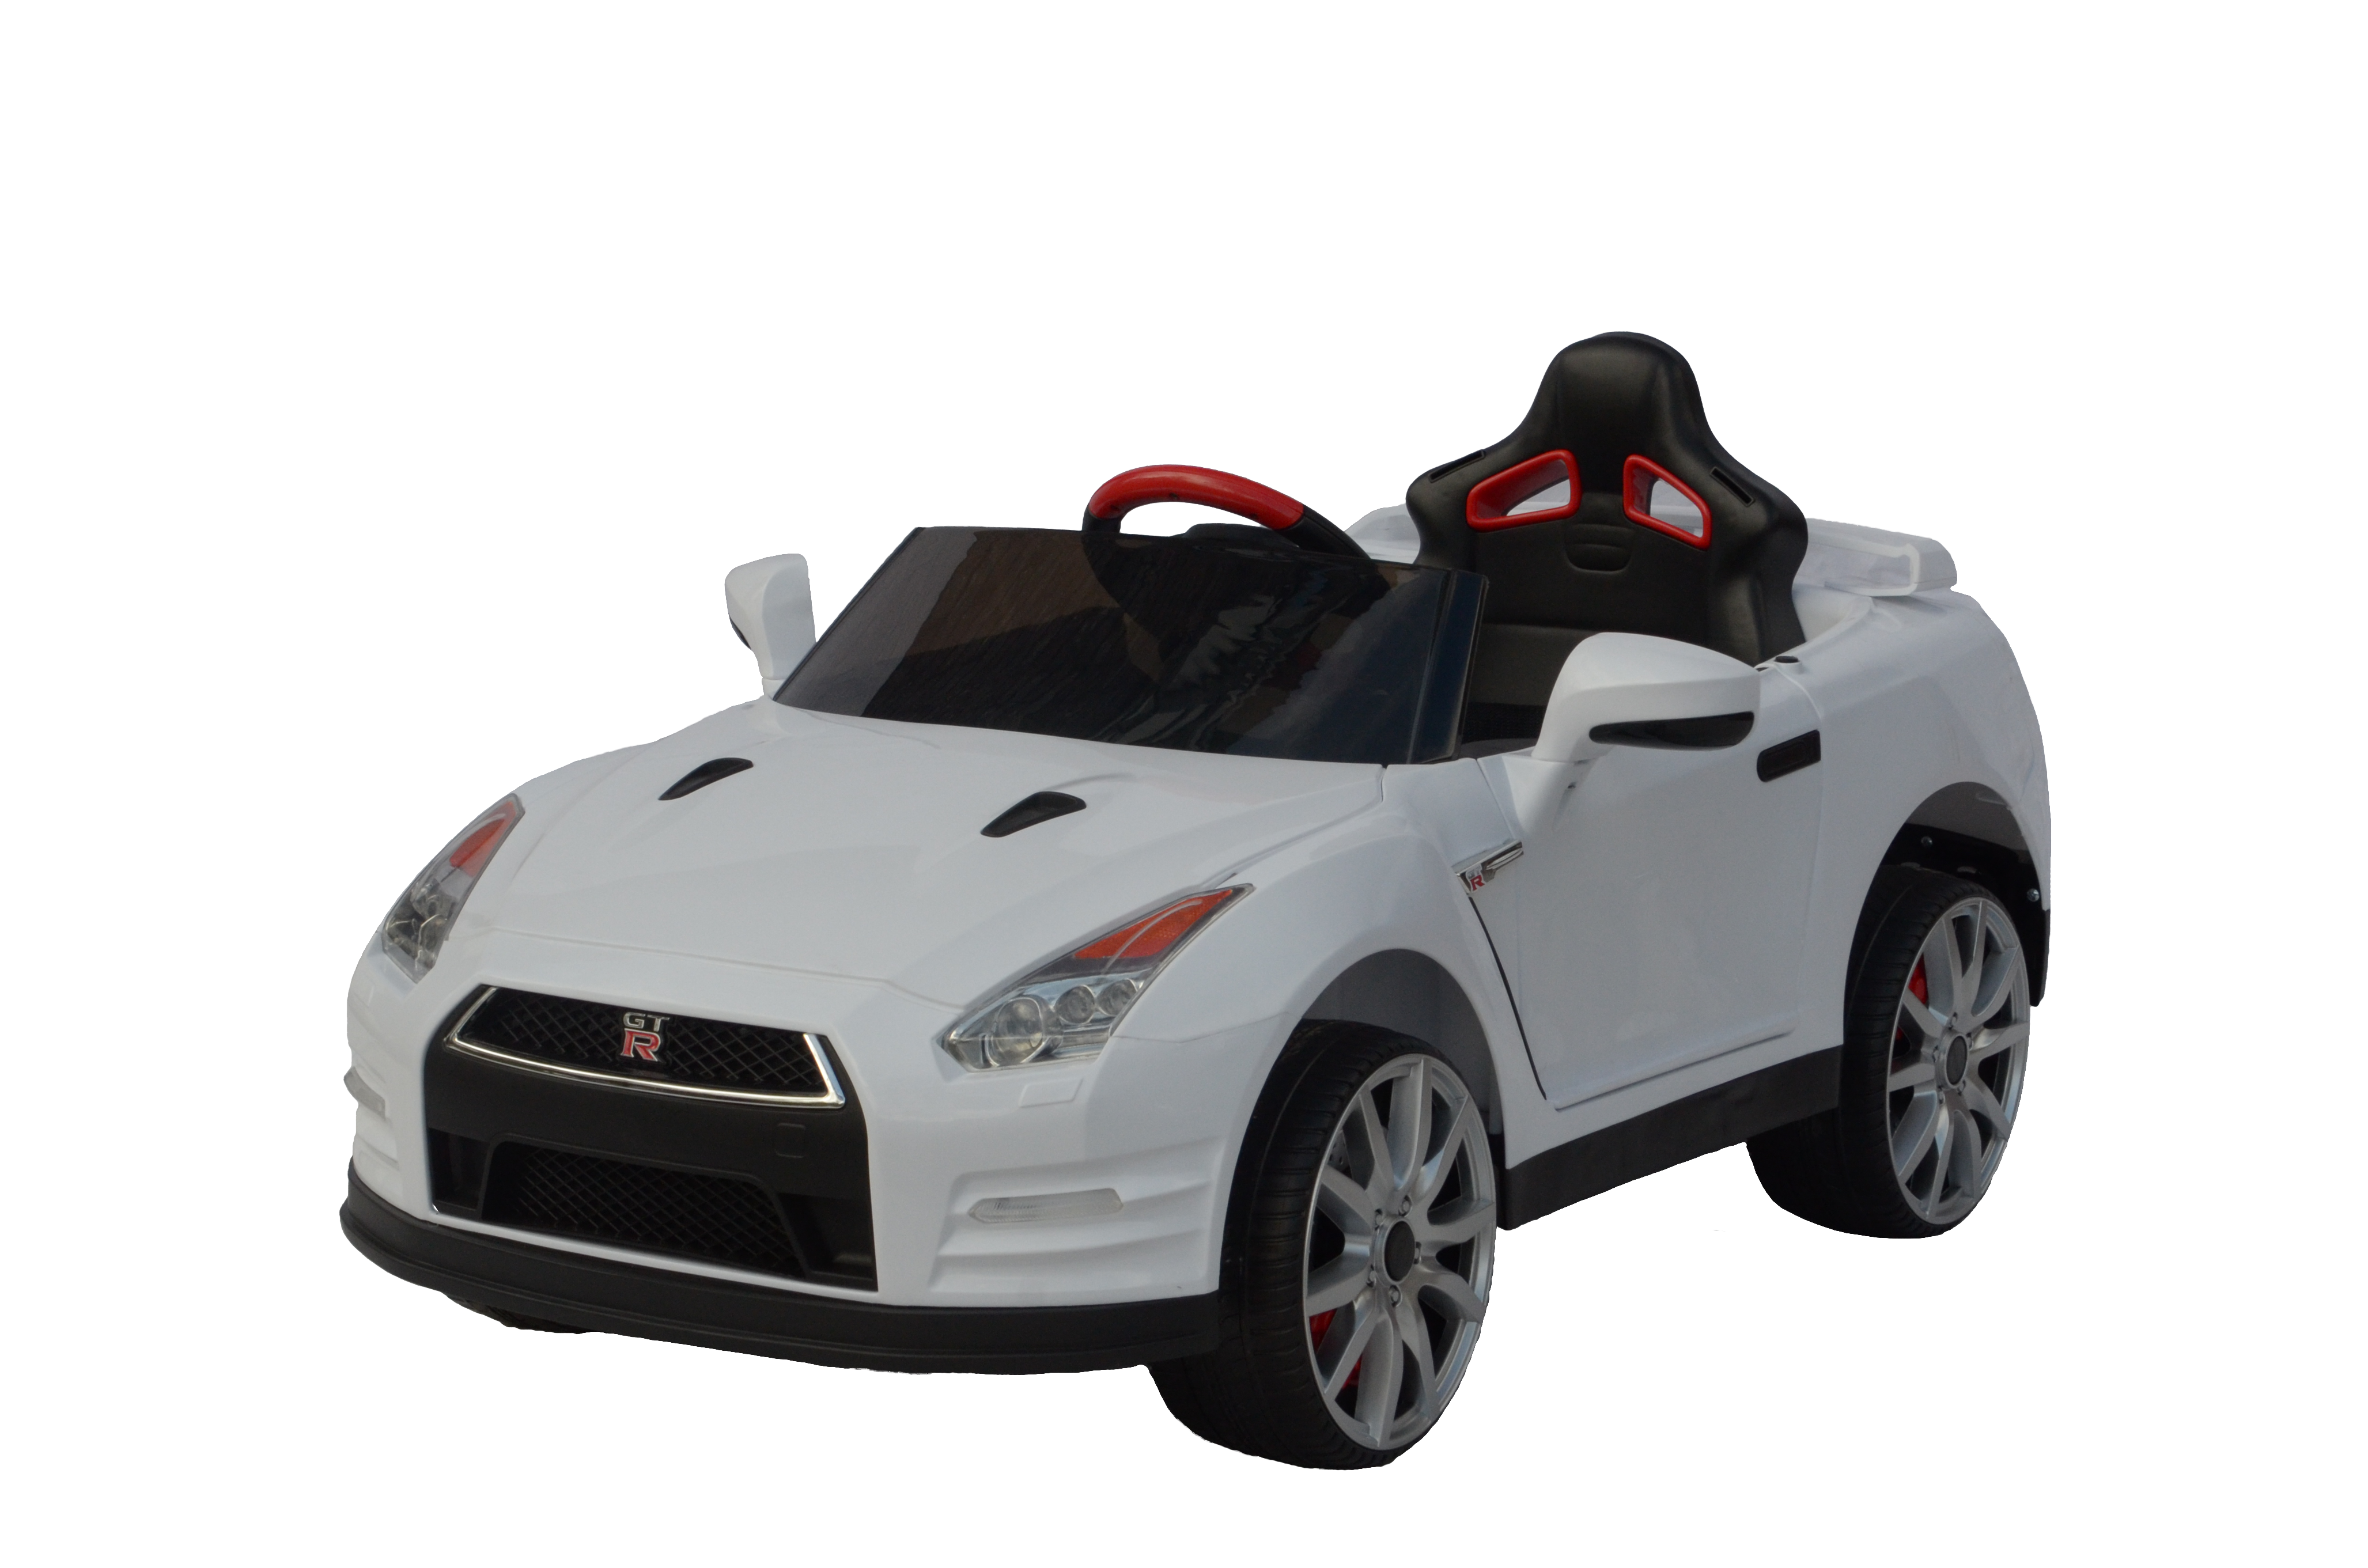 Toys R Us Ride On Cars >> Licensed Nissan GTR R35 - White | Electric Ride on Cars ...